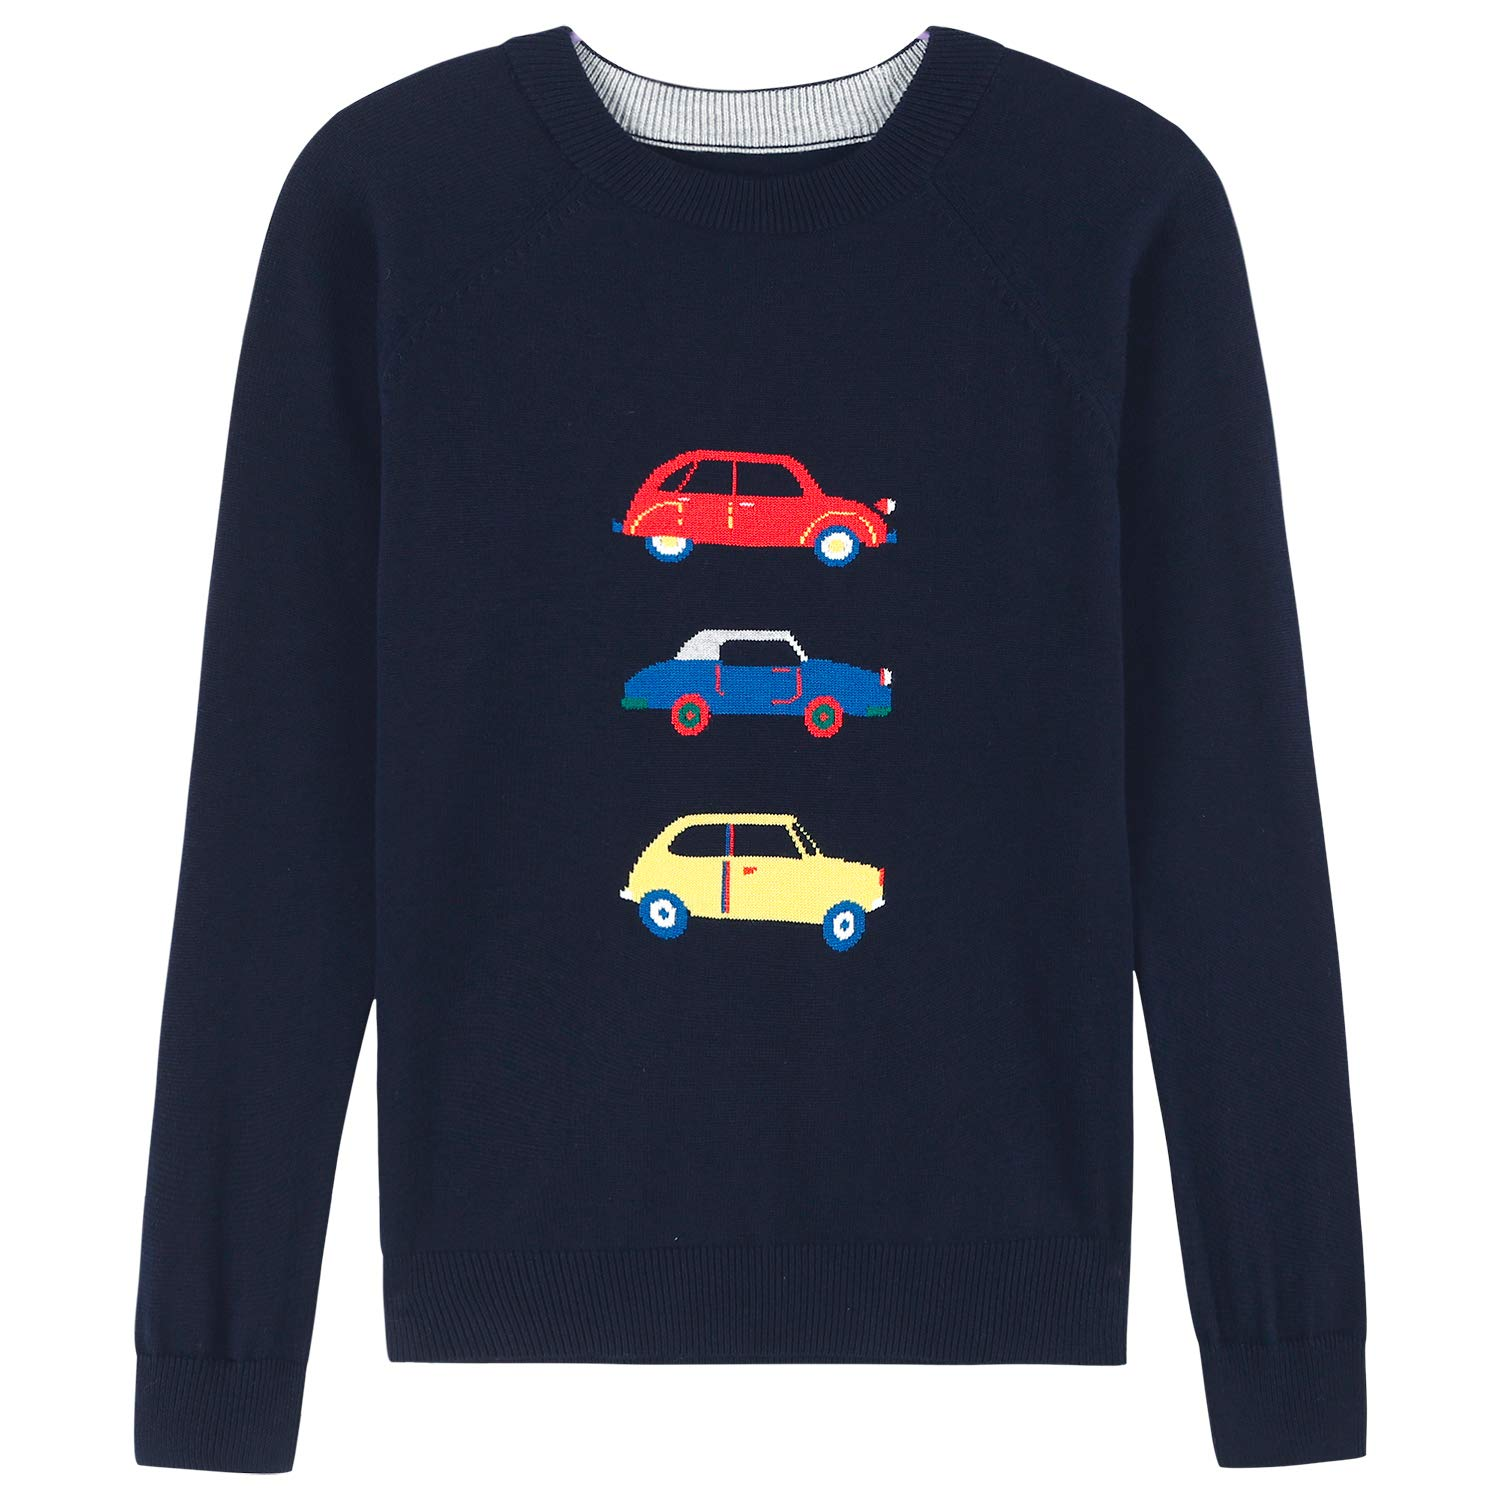 Adory Sweety Tops Sweater for Kids Baby Boy Toddler Soft &Cute Crew Neck Jacquard Knit with Colorful Cars Long Sleeve Pullover (Navy, 8Y)